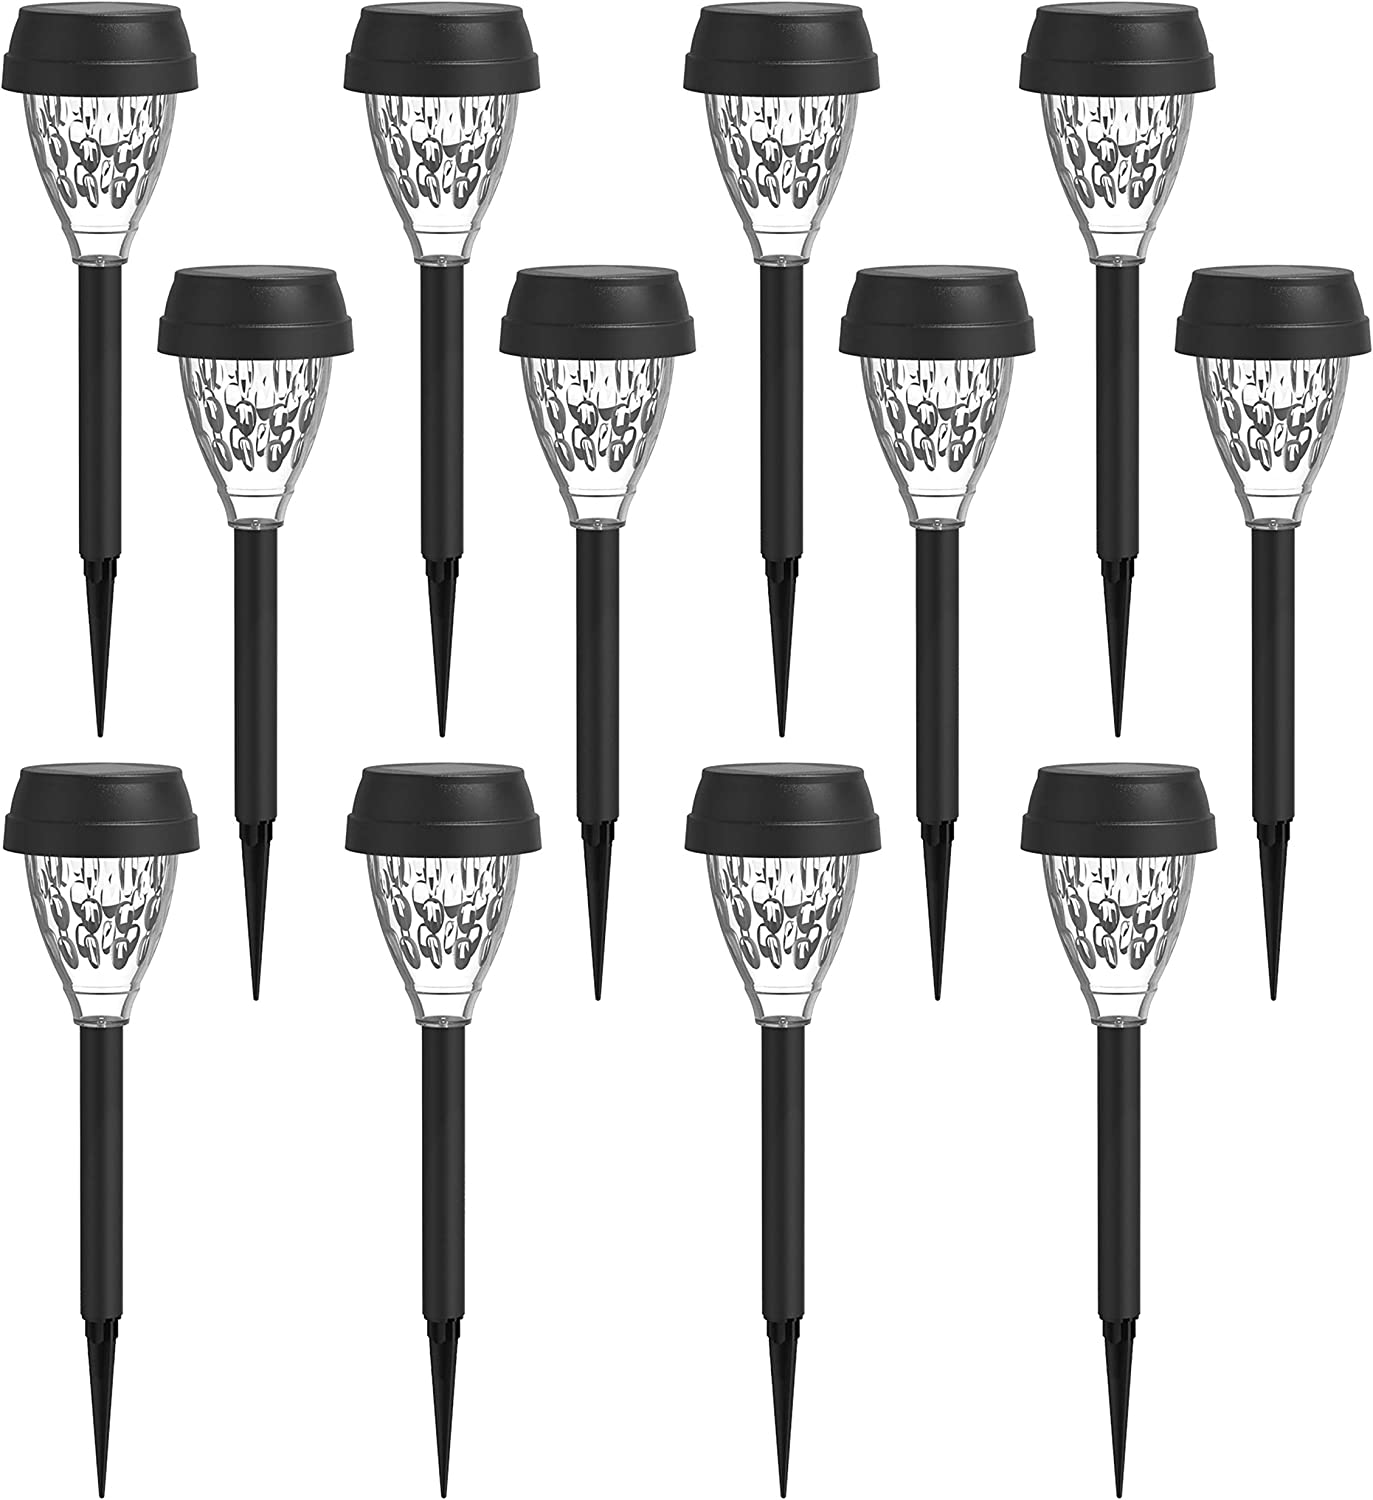 MAGGIFT 12 Pack Solar Powered Pathway Lights Outdoor RGB Muticolor Changing Garden Lights, Change Color Automatically, Waterproof Solar Landscape Lights for Lawn, Patio, Yard, Walkway, Deck, Driveway